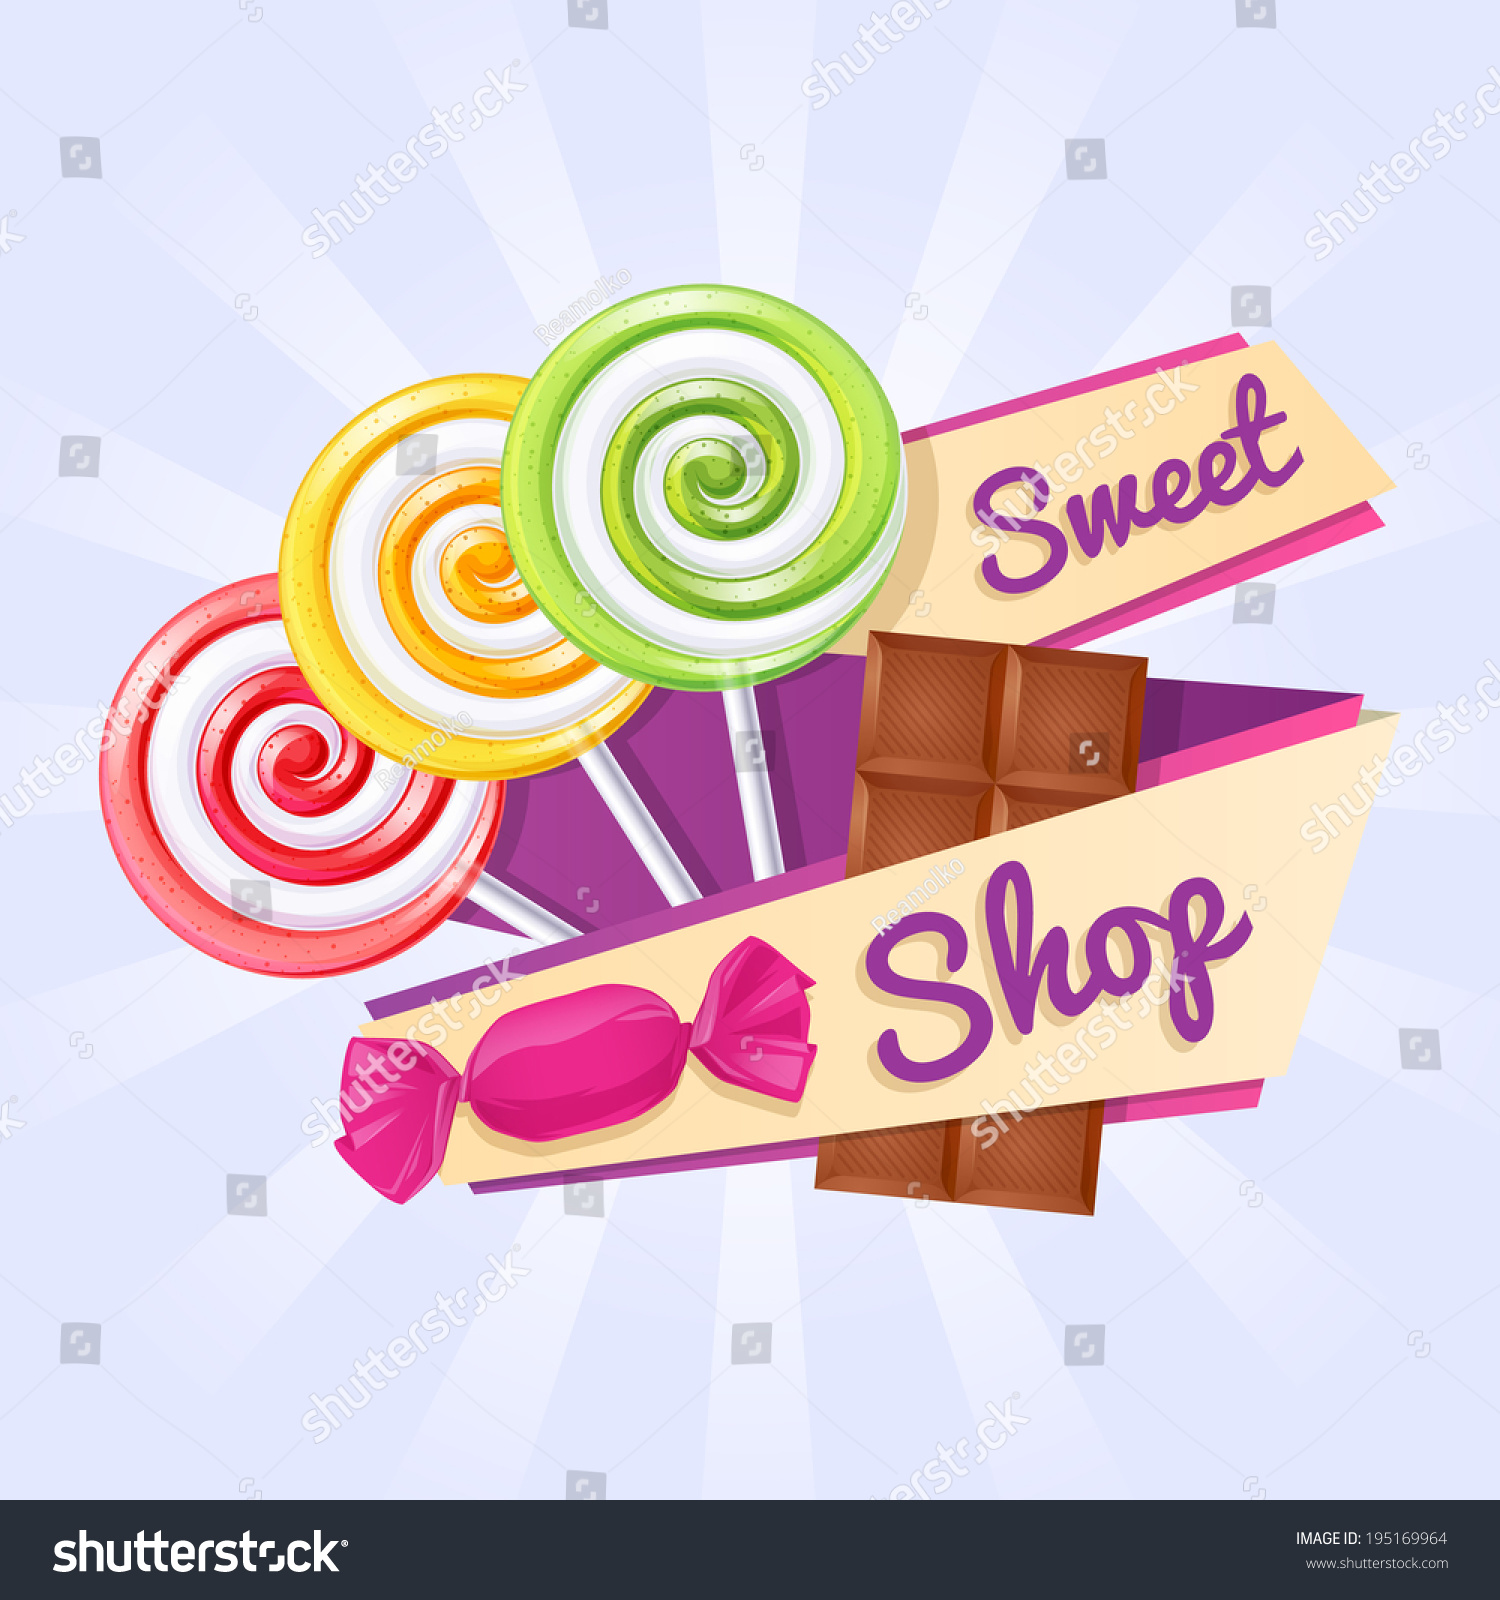 sweet shop poster background lollipops candy stock vector 195169964 shutterstock. Black Bedroom Furniture Sets. Home Design Ideas